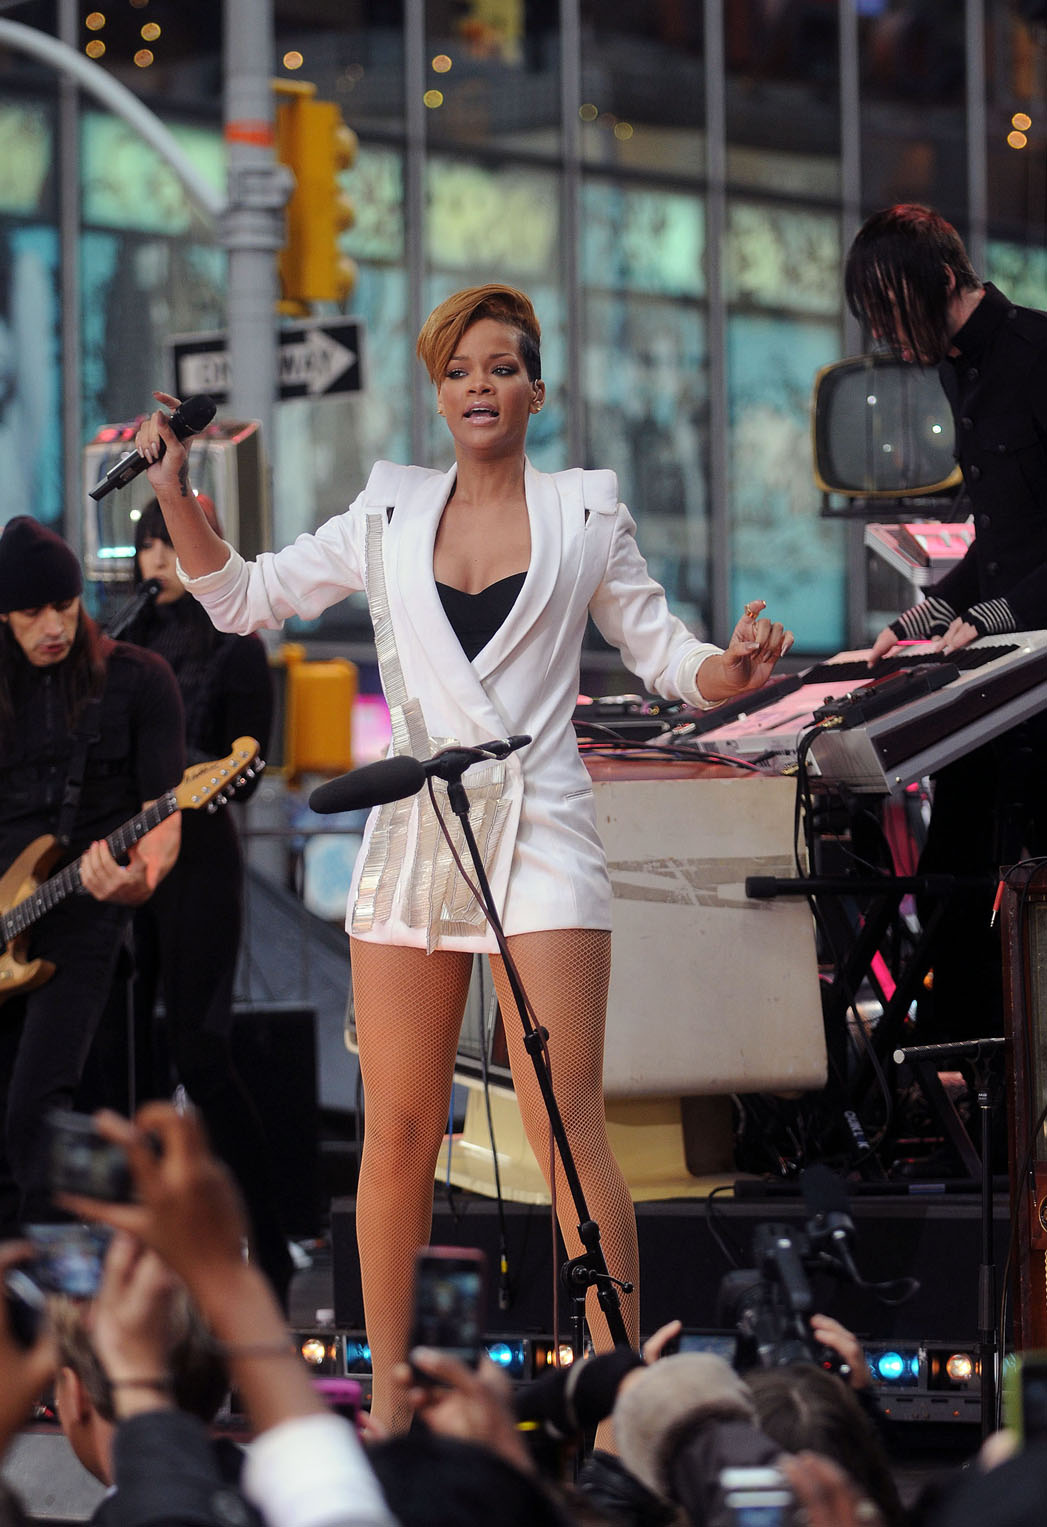 Rihanna Exposing in White Dress at Good Morning America Performance